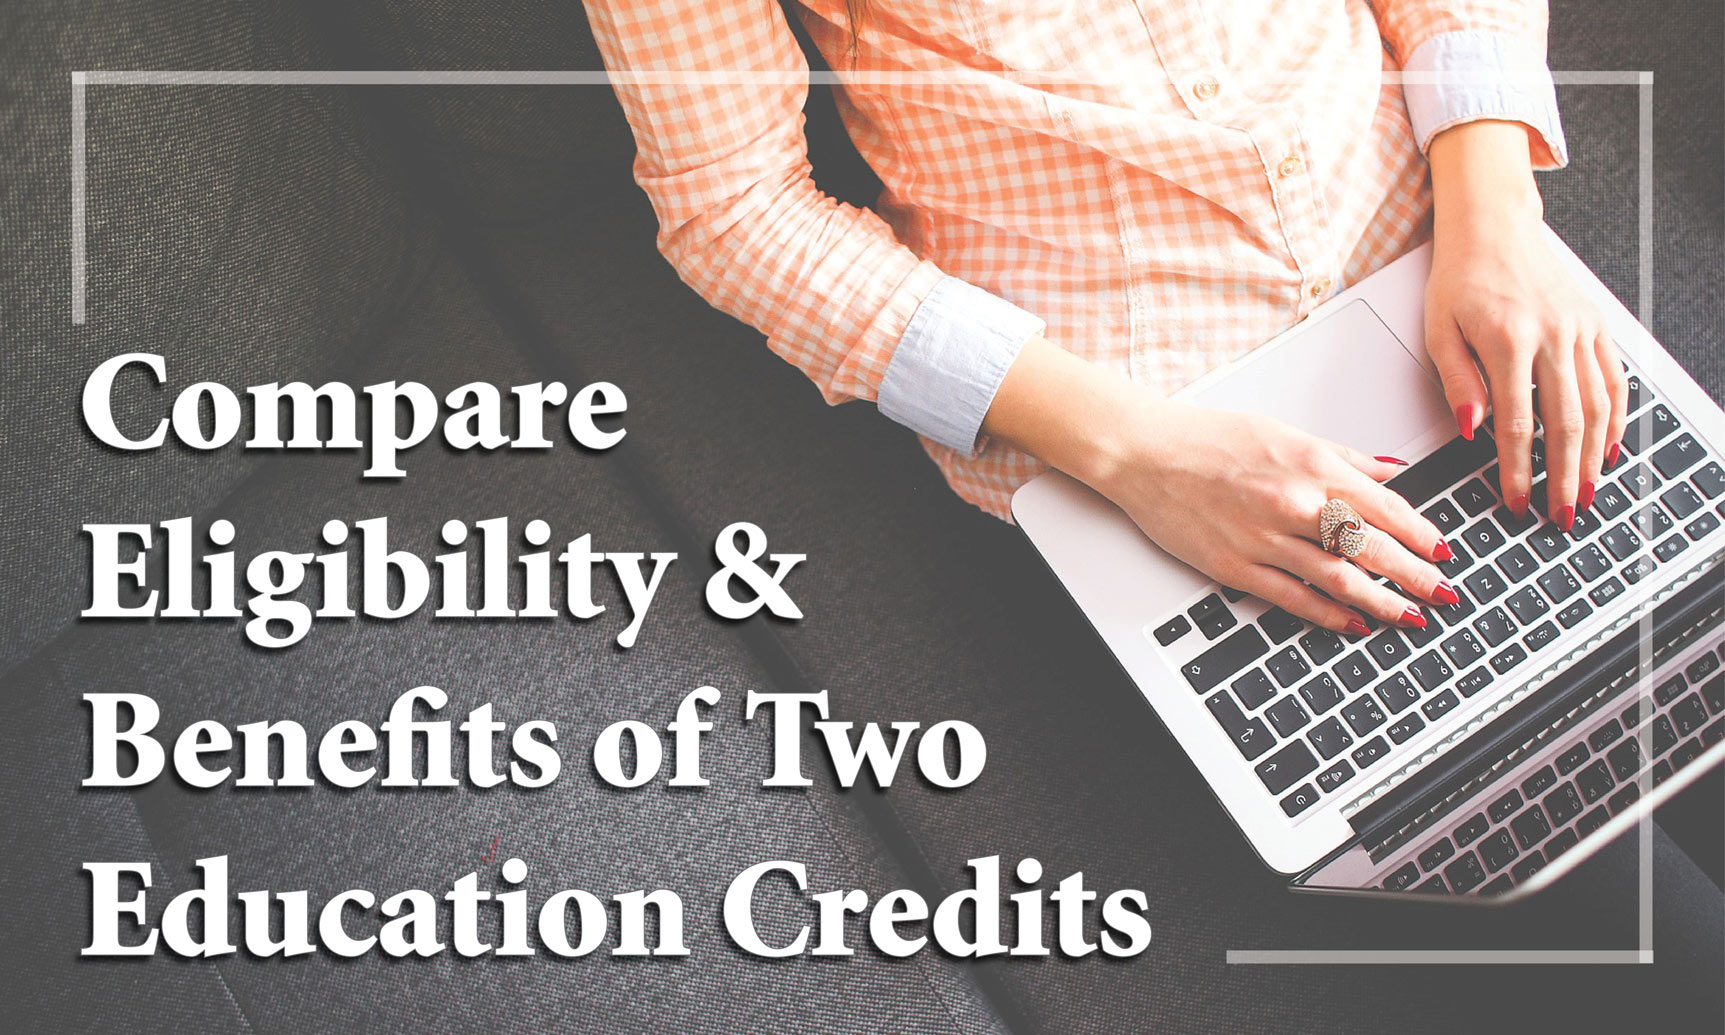 Compare Eligibility & Benefits of Two Education Credits